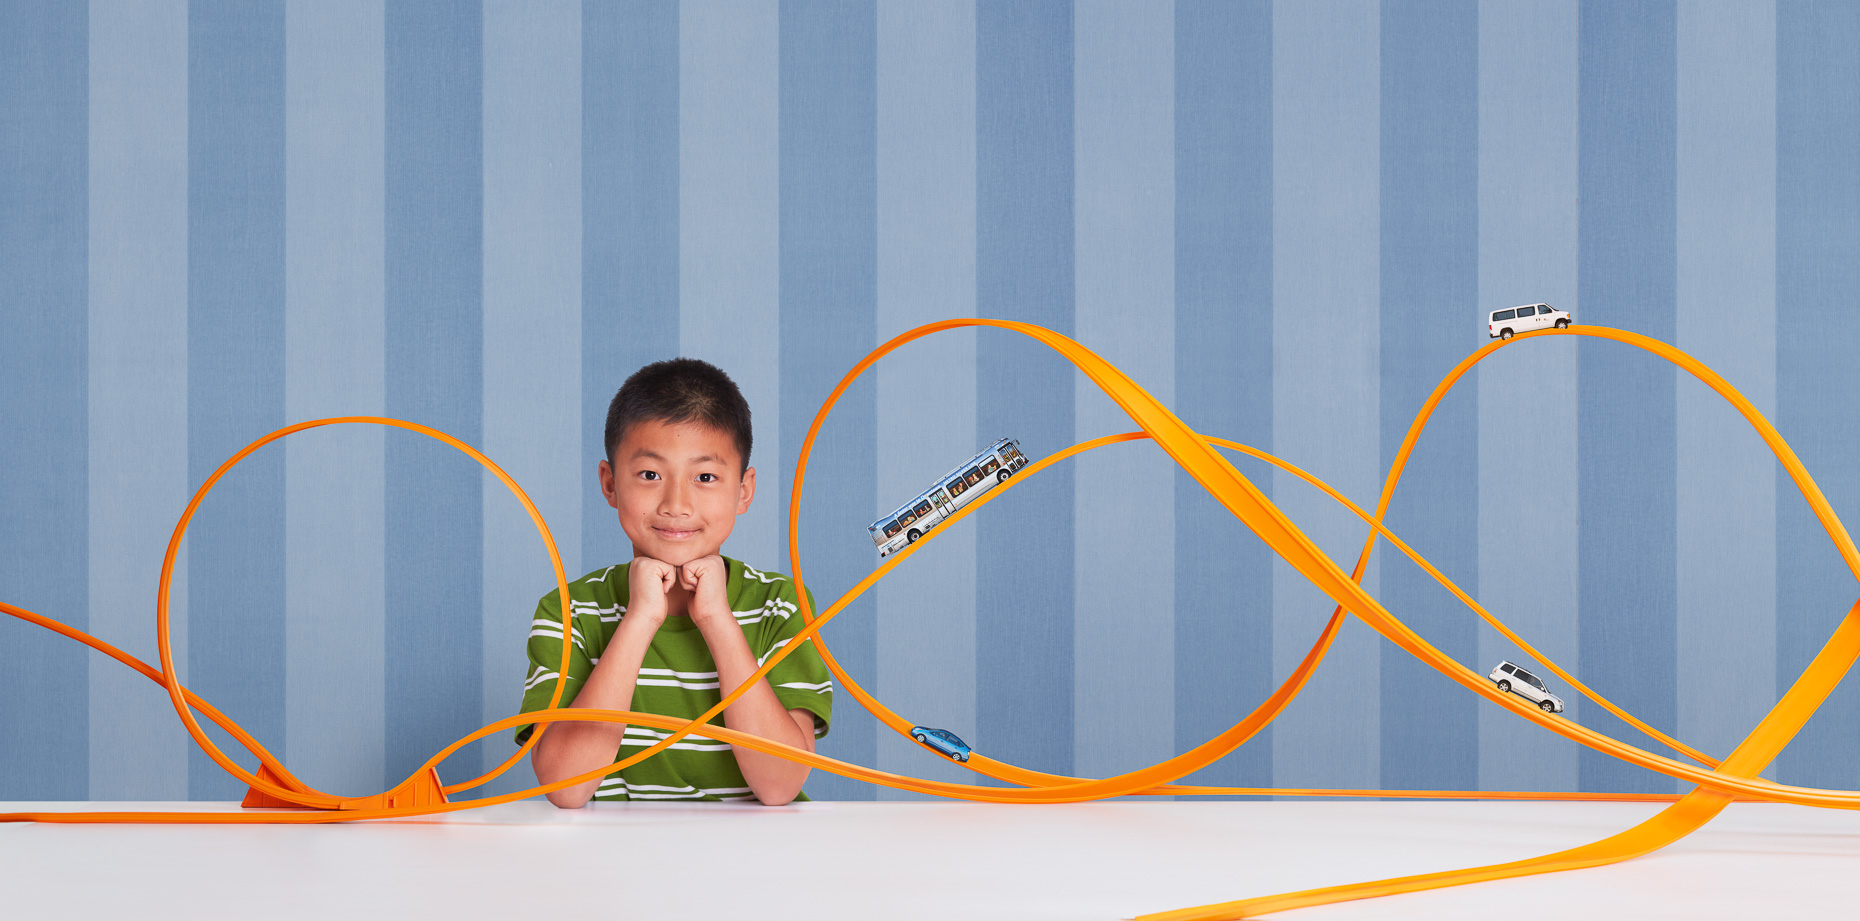 Portrait of Asian boy proud of his complex Hot Wheels toy car track setup in front of blue striped wallpaper by David Zaitz